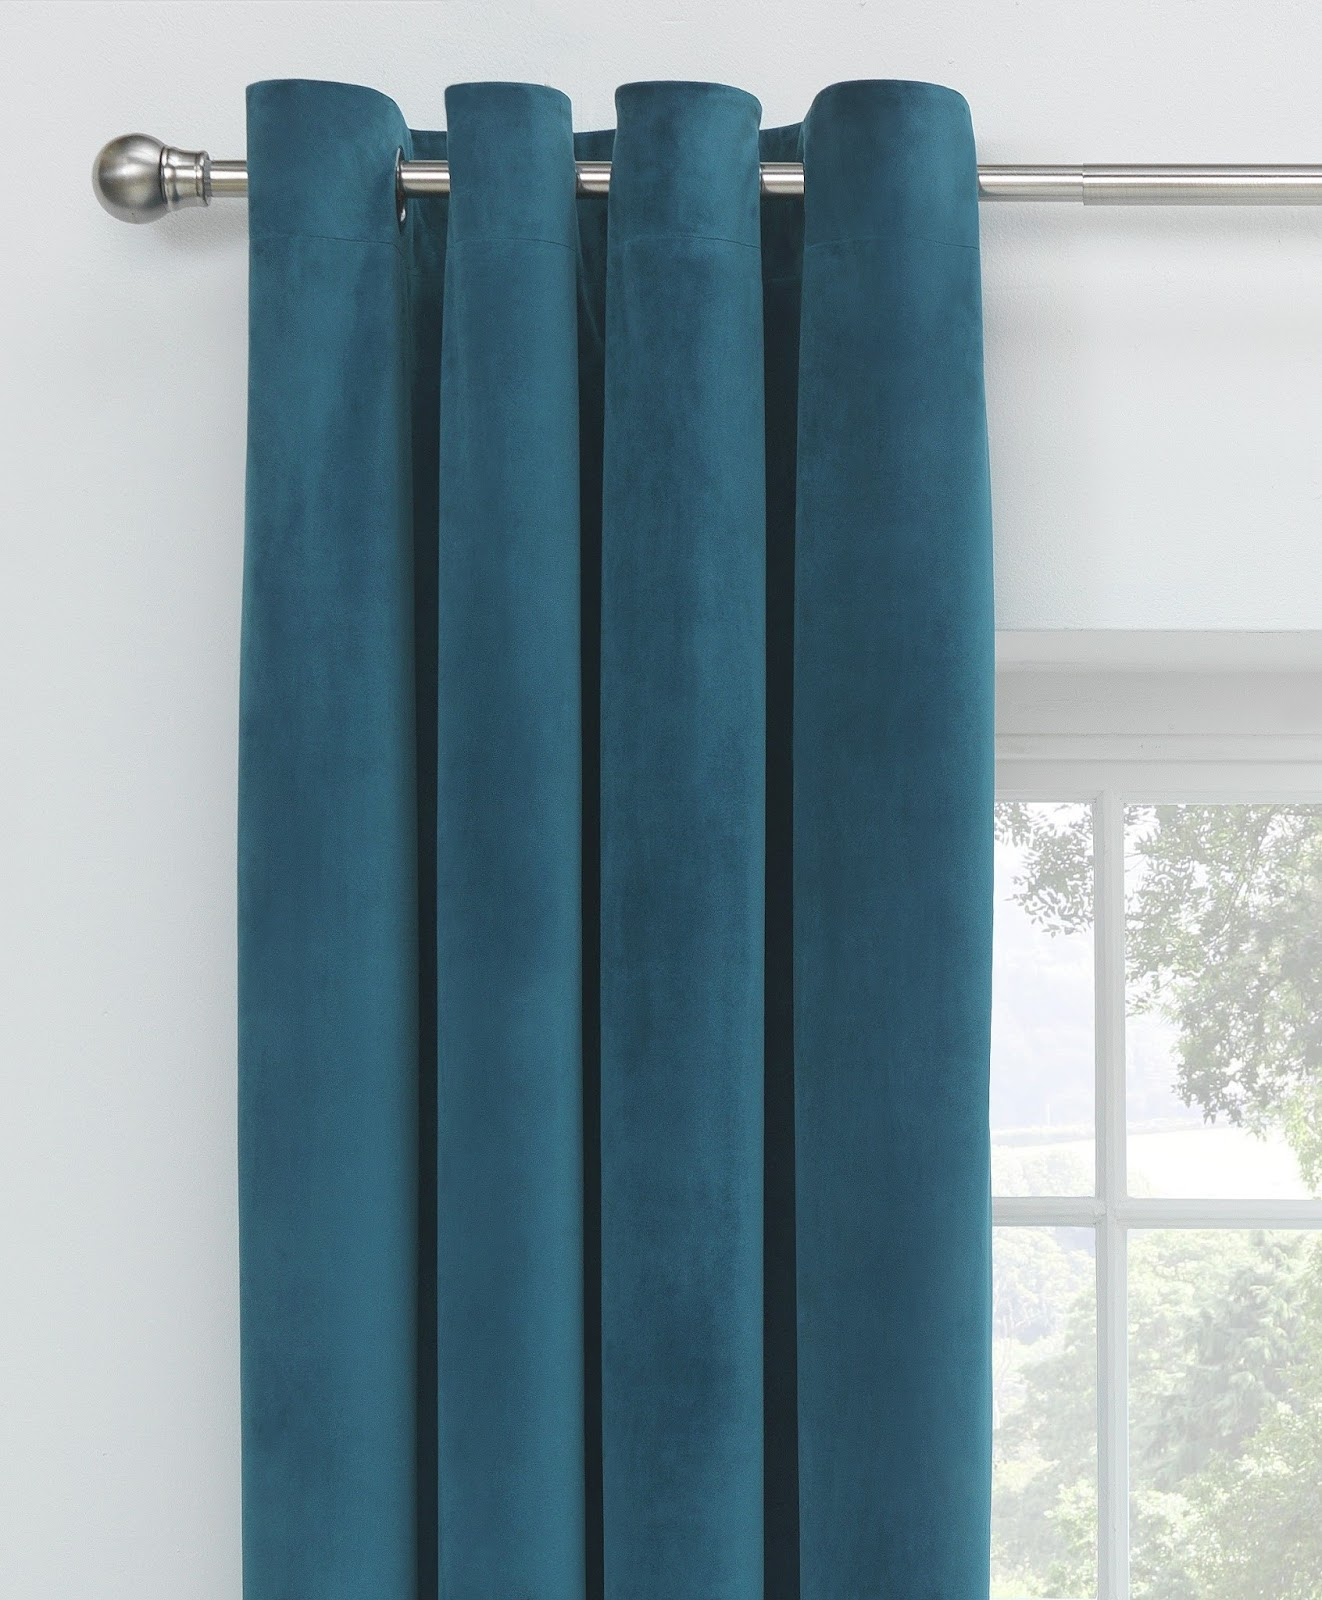 Blackout Insulated Curtains Patio Door Sheer Soundproof